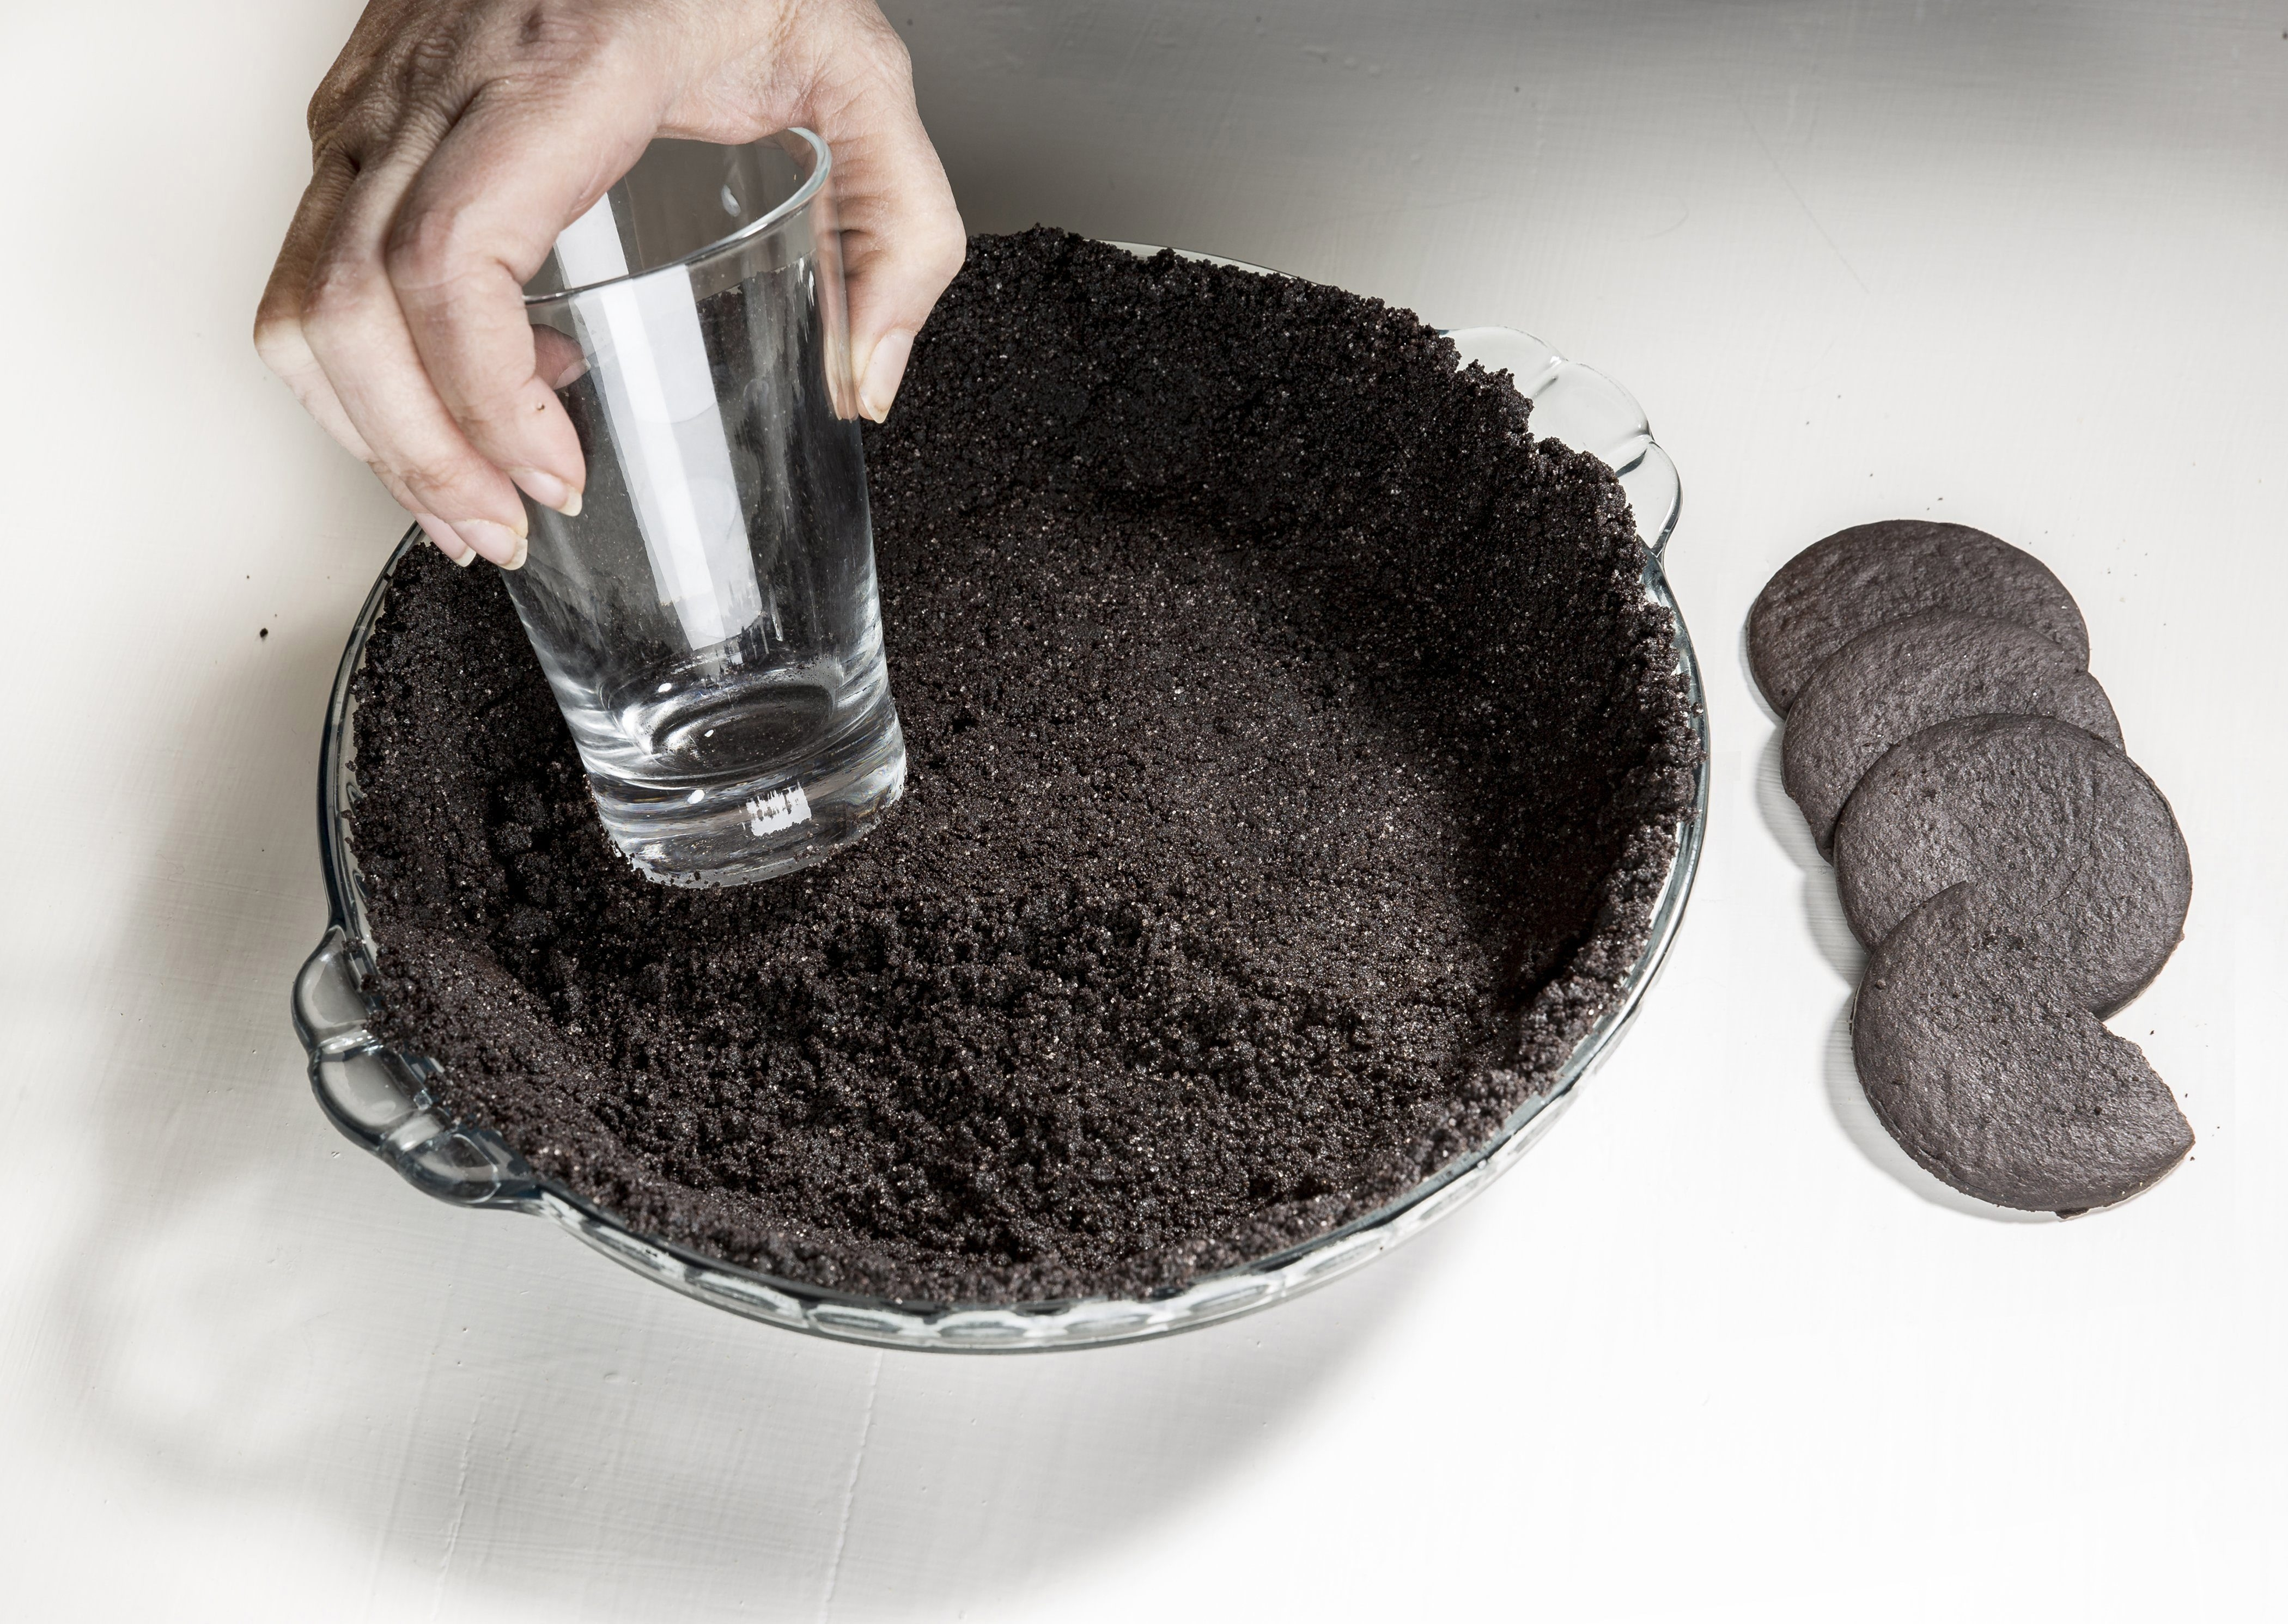 This preparation shot shows how to use a glass to press crumbs into a piecrust. (Bill Hogan/Chicago Tribune/MCT)